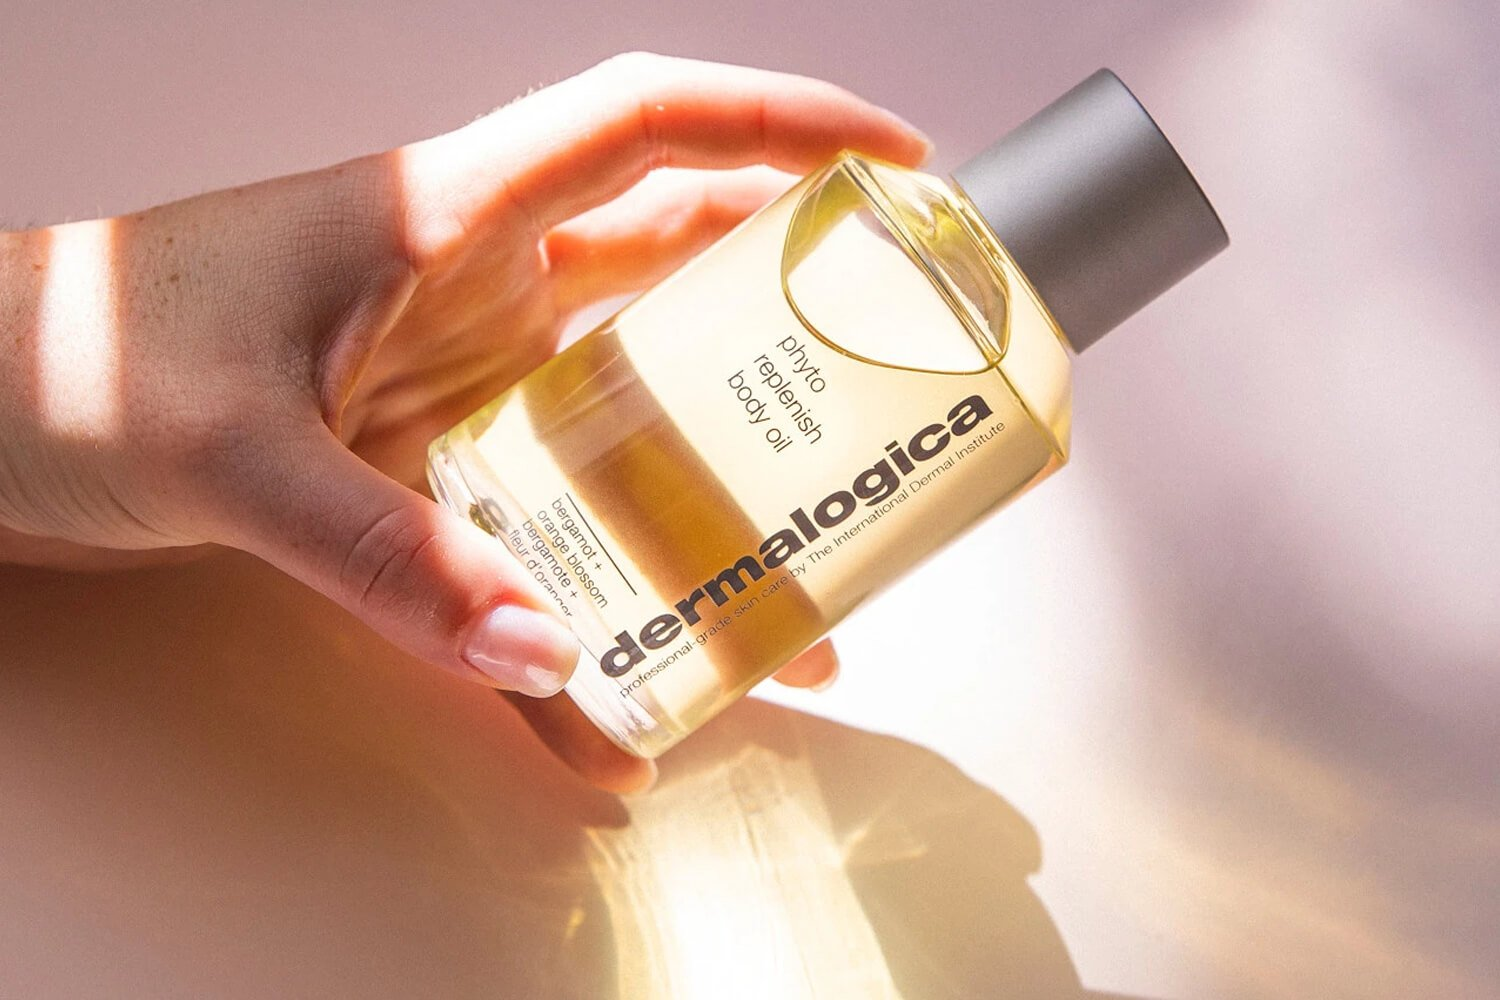 phyto replenish body oil in hand